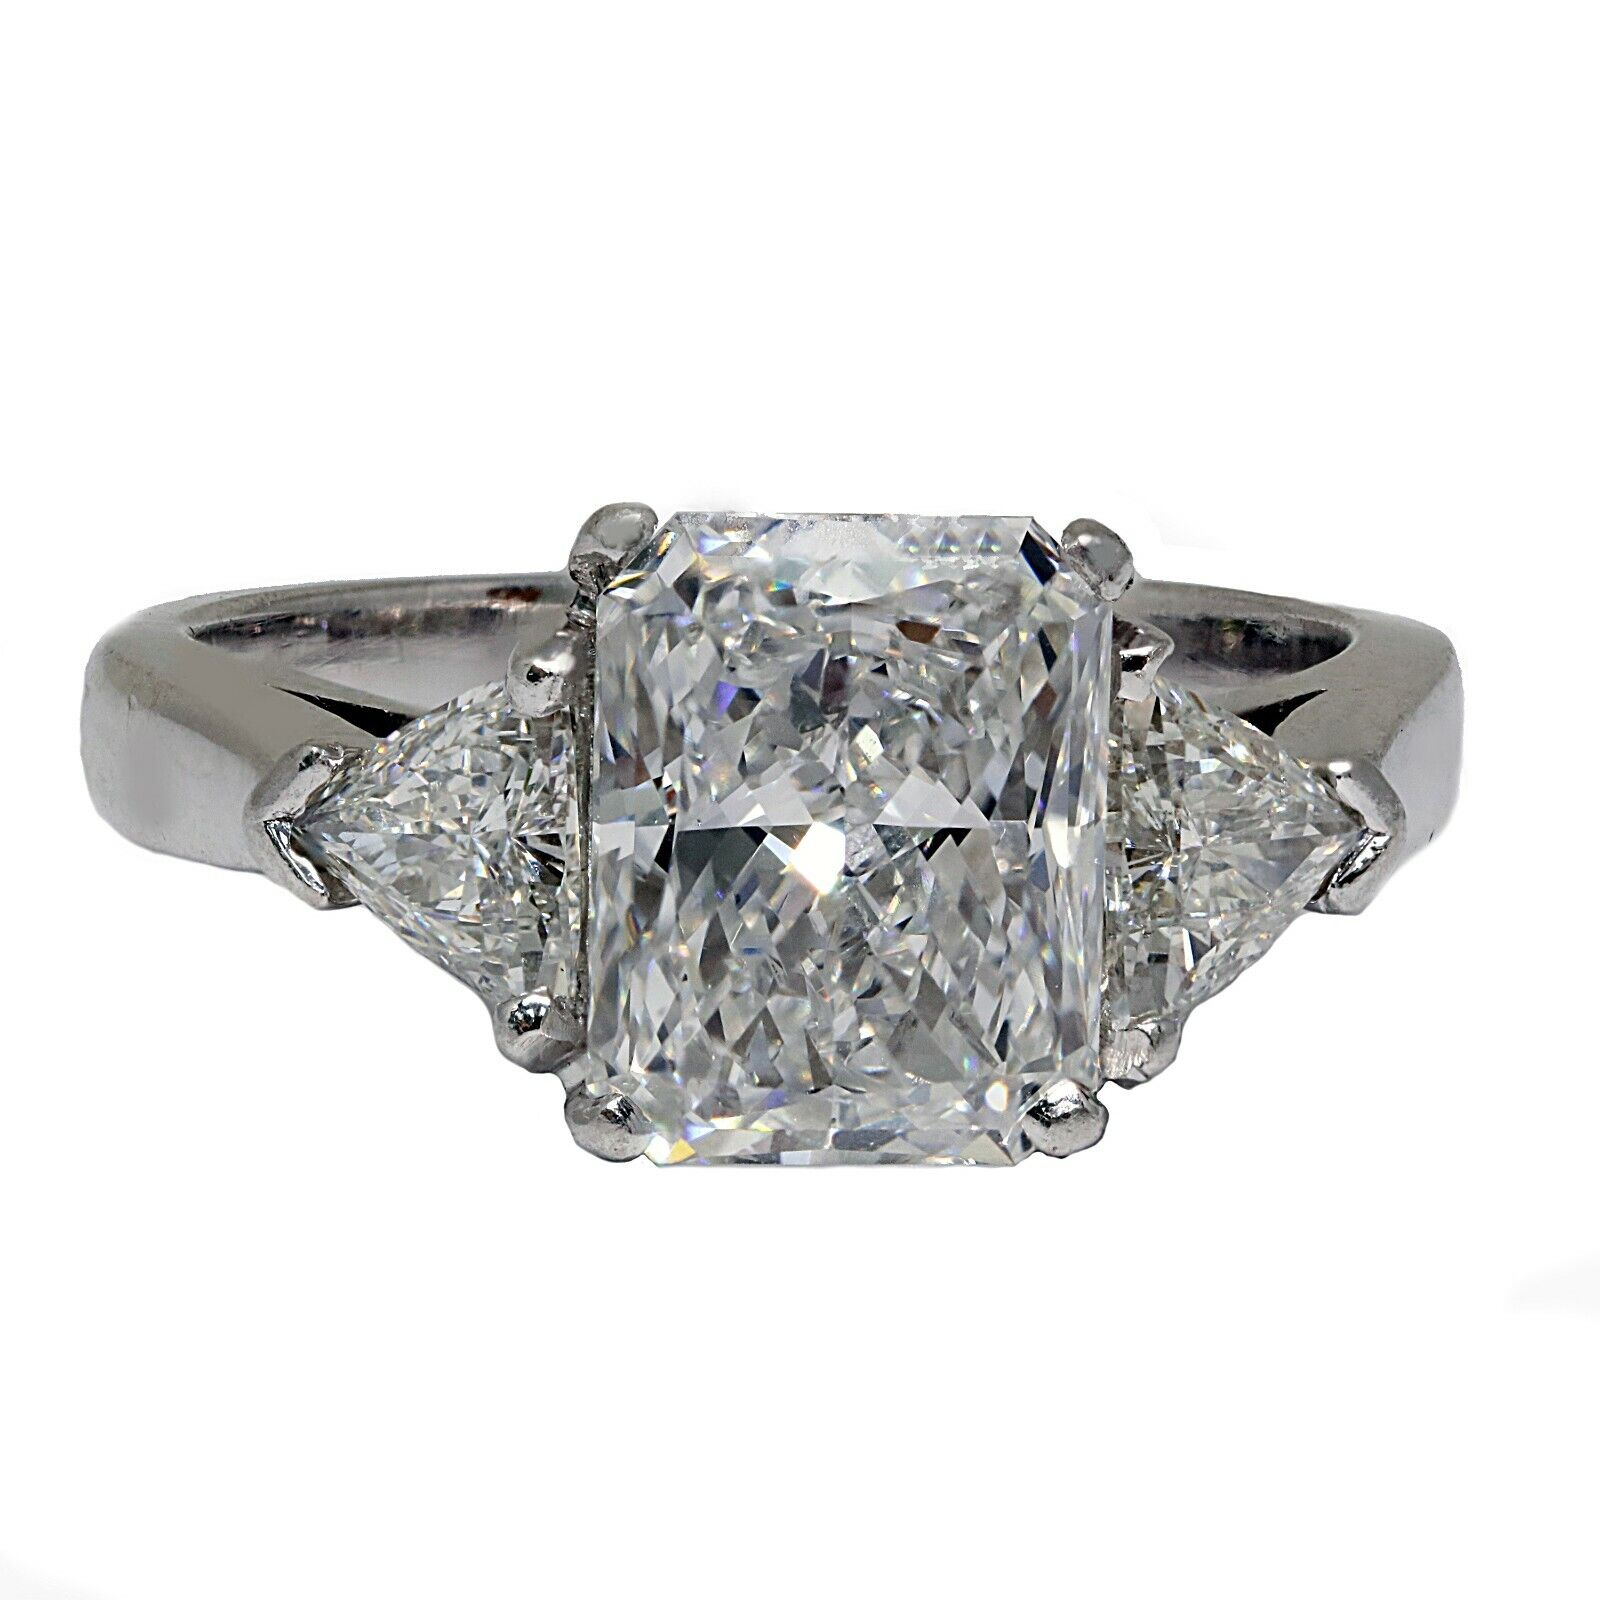 2.06 Ct GIA Radiant Diamond Engagement Ring & Triangle Platinum Diamond Ring